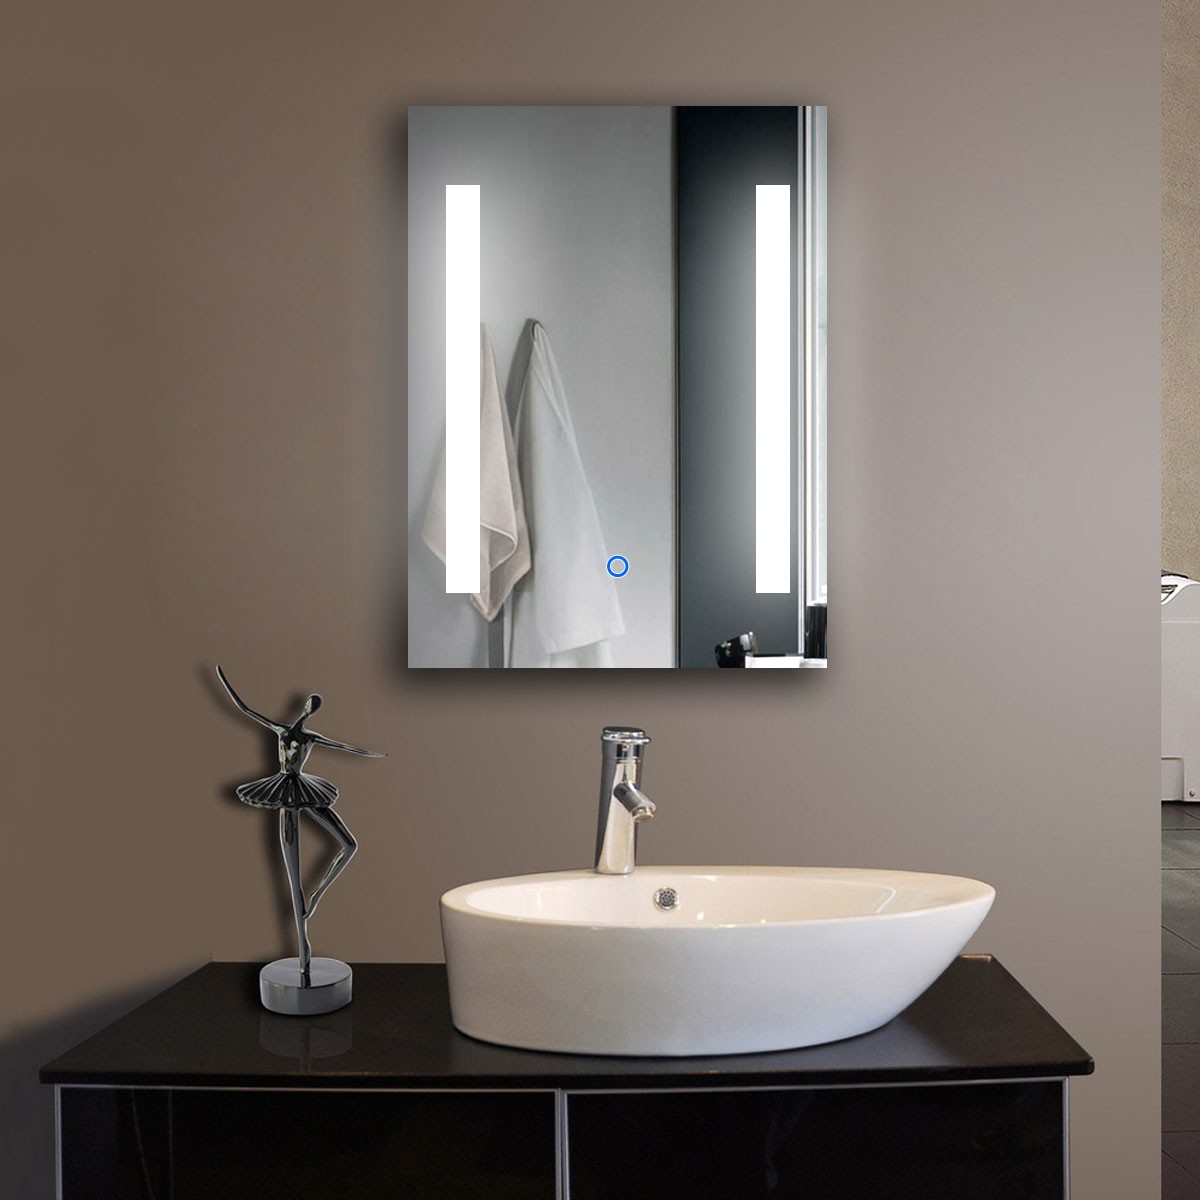 24 x 32 In Vertical LED Bathroom Mirror with Touch Button (DK-OD-C23)